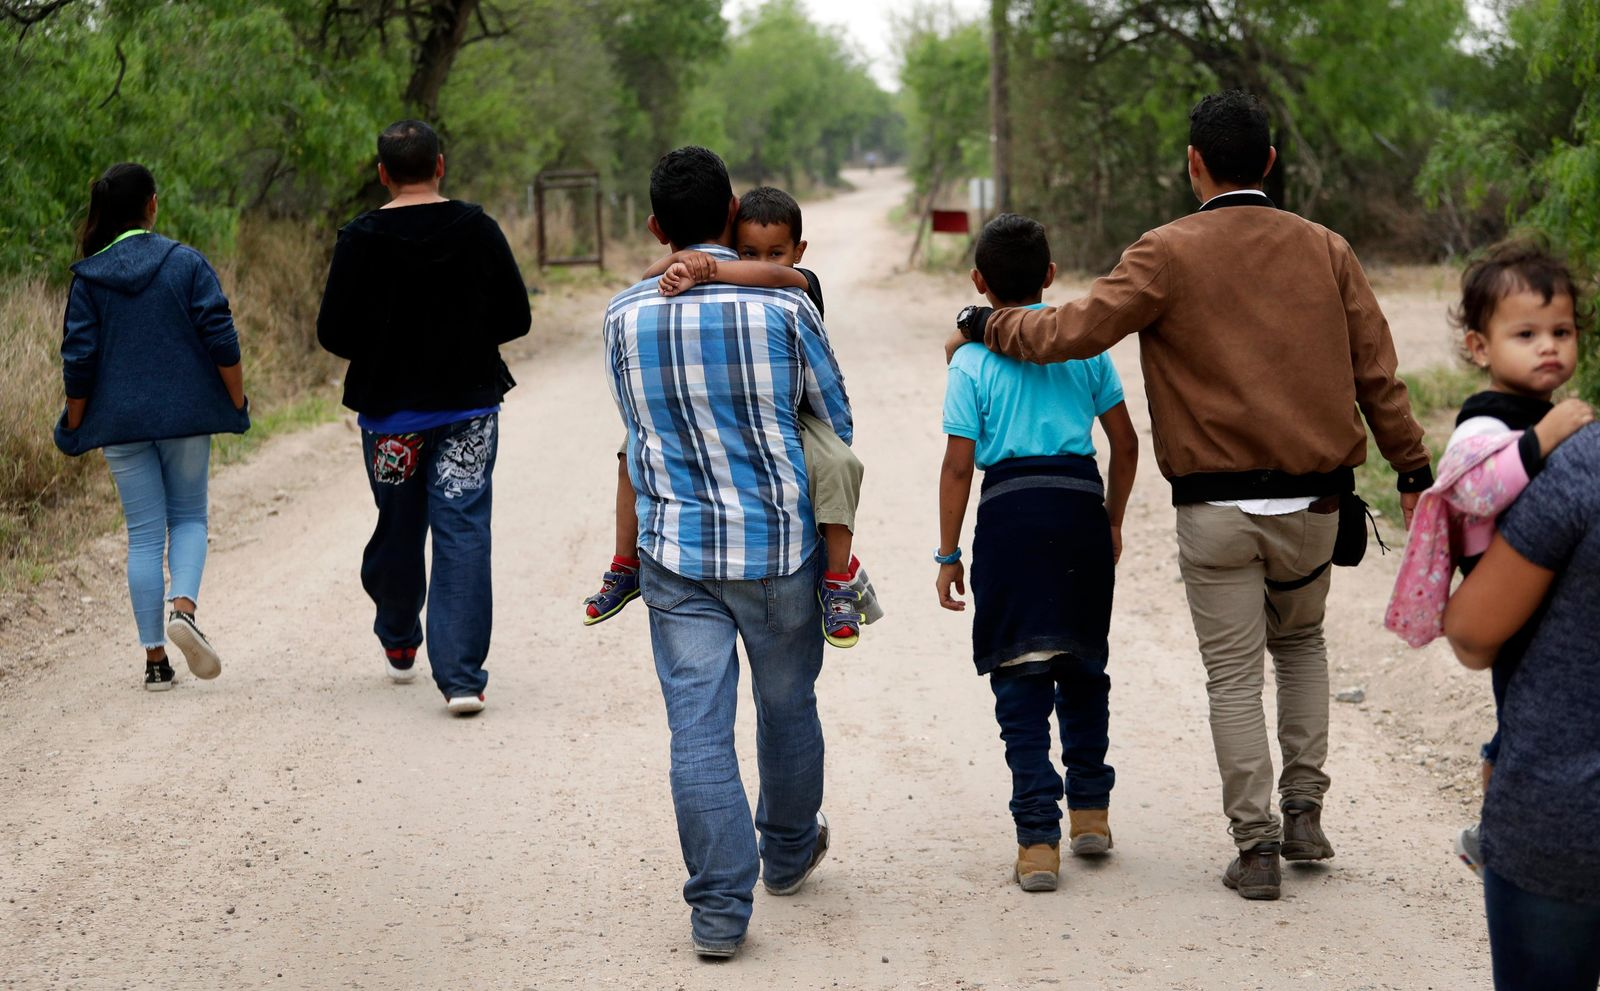 FILE - In this March 14, 2019, file photo, a group of migrant families walk from the Rio Grande, the river separating the U.S. and Mexico in Texas, near McAllen, Texas, right before being apprehended by Border Patrol. (AP Photo/Eric Gay, File)